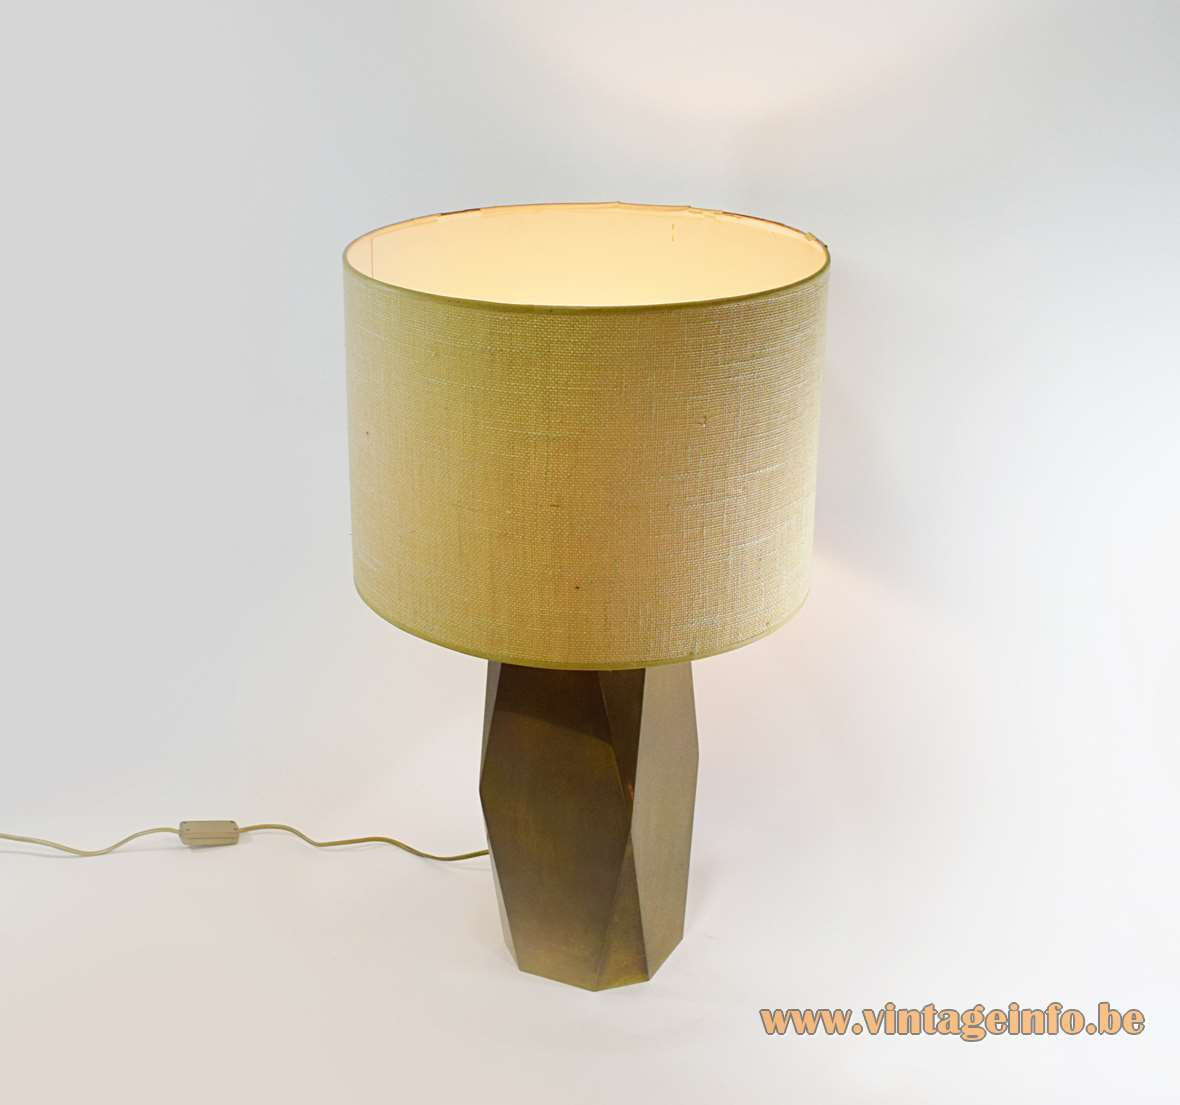 Brass table lamp geometric oblong hollow fabric lampshade 1970s 1980s Massive Belgium Hollywood Regency